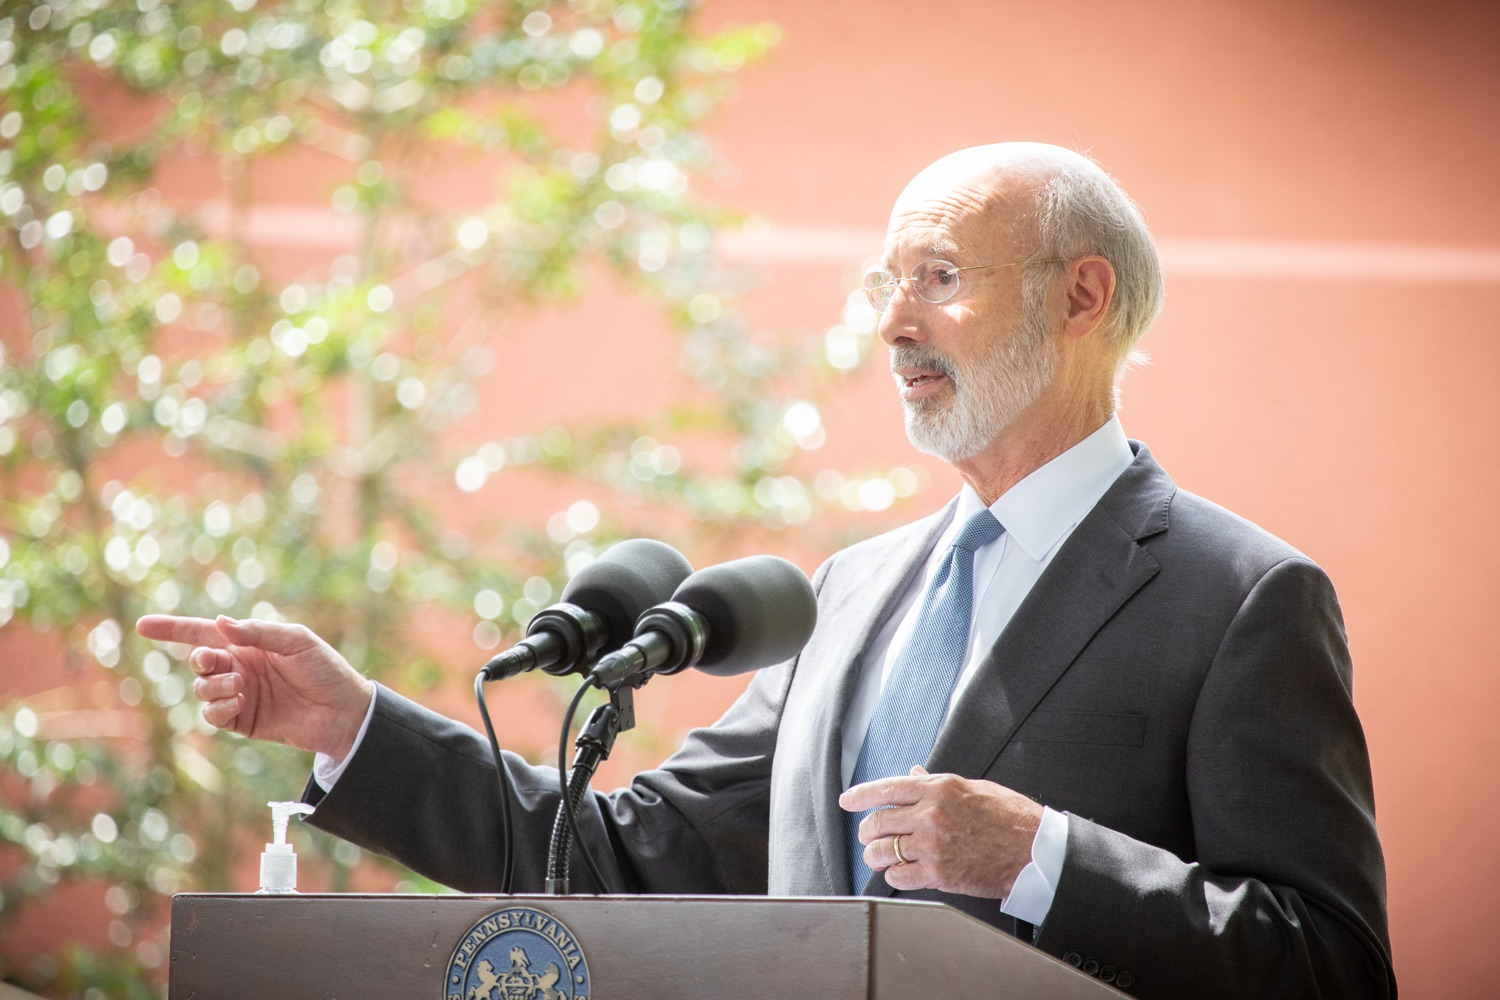 "<a href=""https://filesource.wostreaming.net/commonwealthofpa/photo/18178_GOV_Lancaster_Health_dz__20.jpg"" target=""_blank"">⇣ Download Photo<br></a>Pennsylvania Governor Tom Wolf speaking at the event.  Governor Tom Wolf today visited Lancaster Health Center, a federally qualified health center, to thank staff for their work to ensure the communitys most vulnerable receive care during COVID-19 and year-round.  Harrisburg, PA  July 24, 2020"